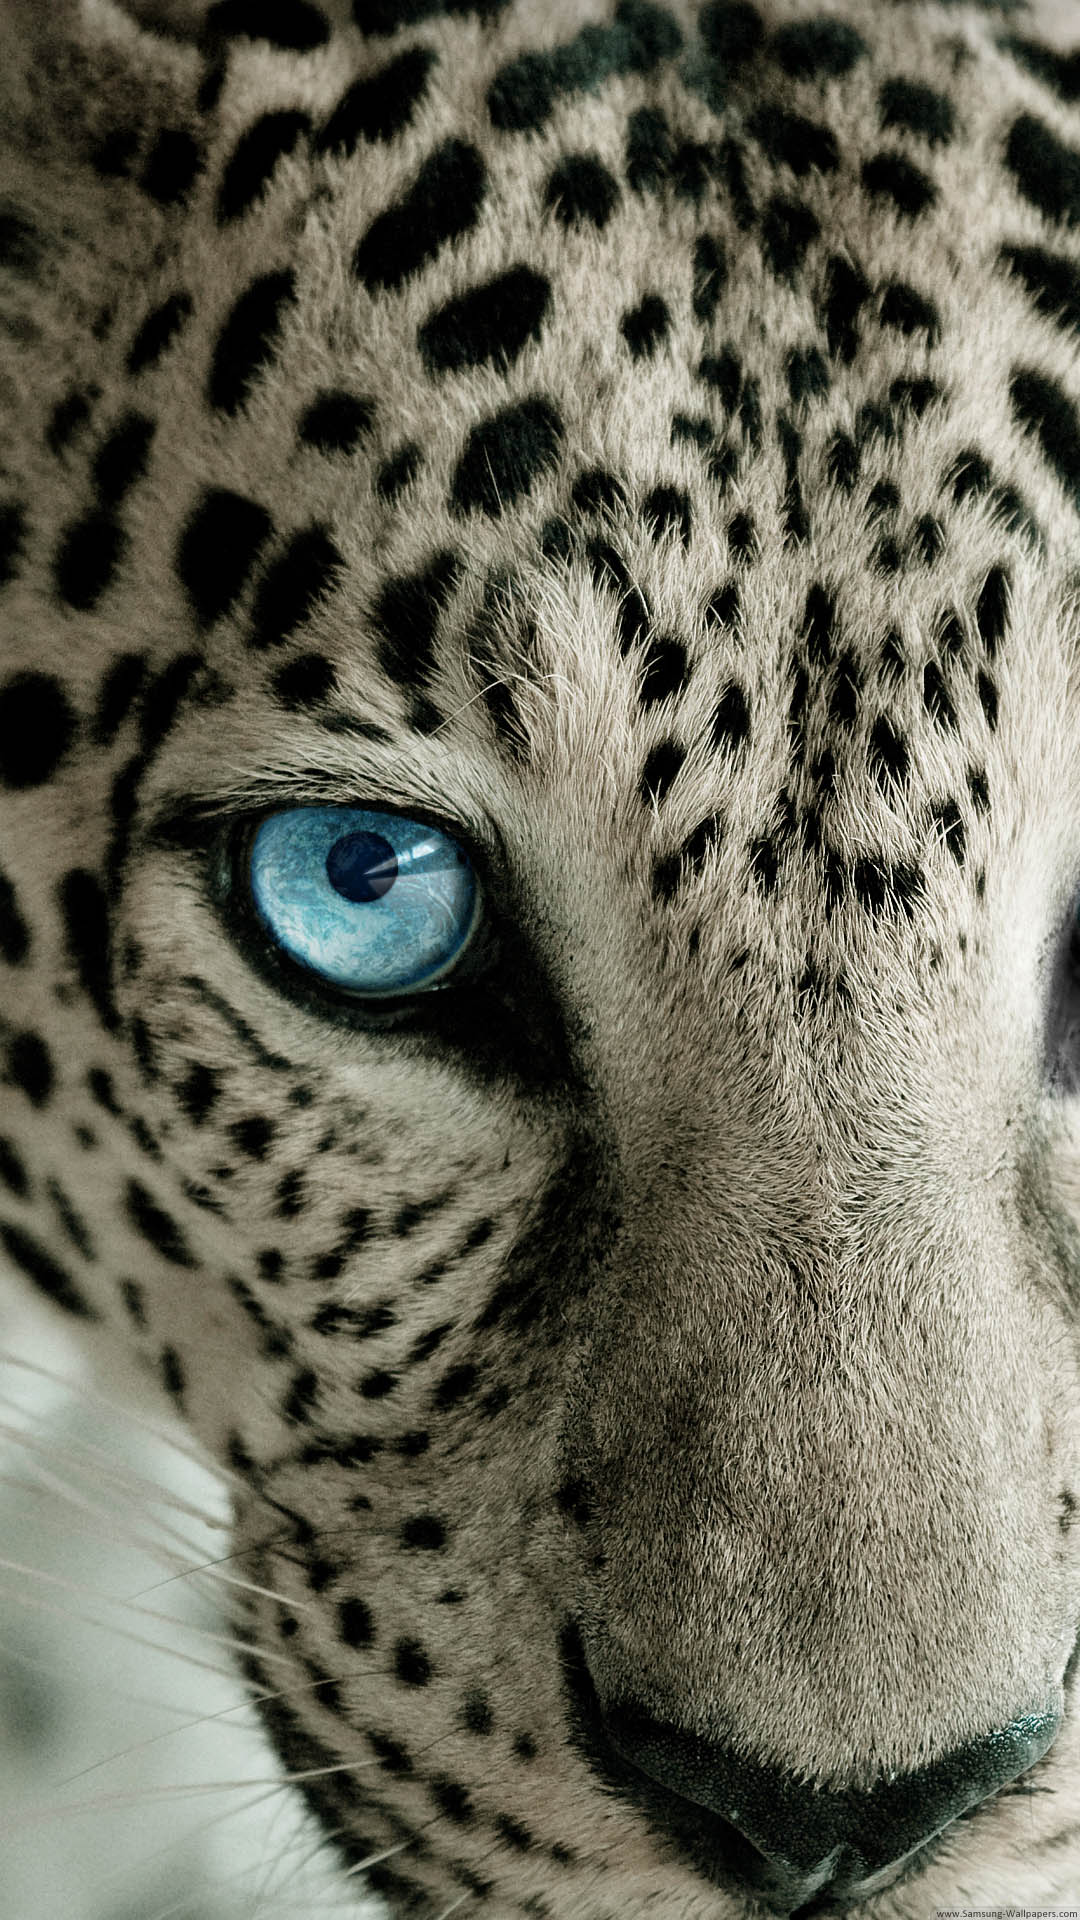 Snow-Leopard-Blue-Eye-iPhone-6-Plus-HD-Wallpaper